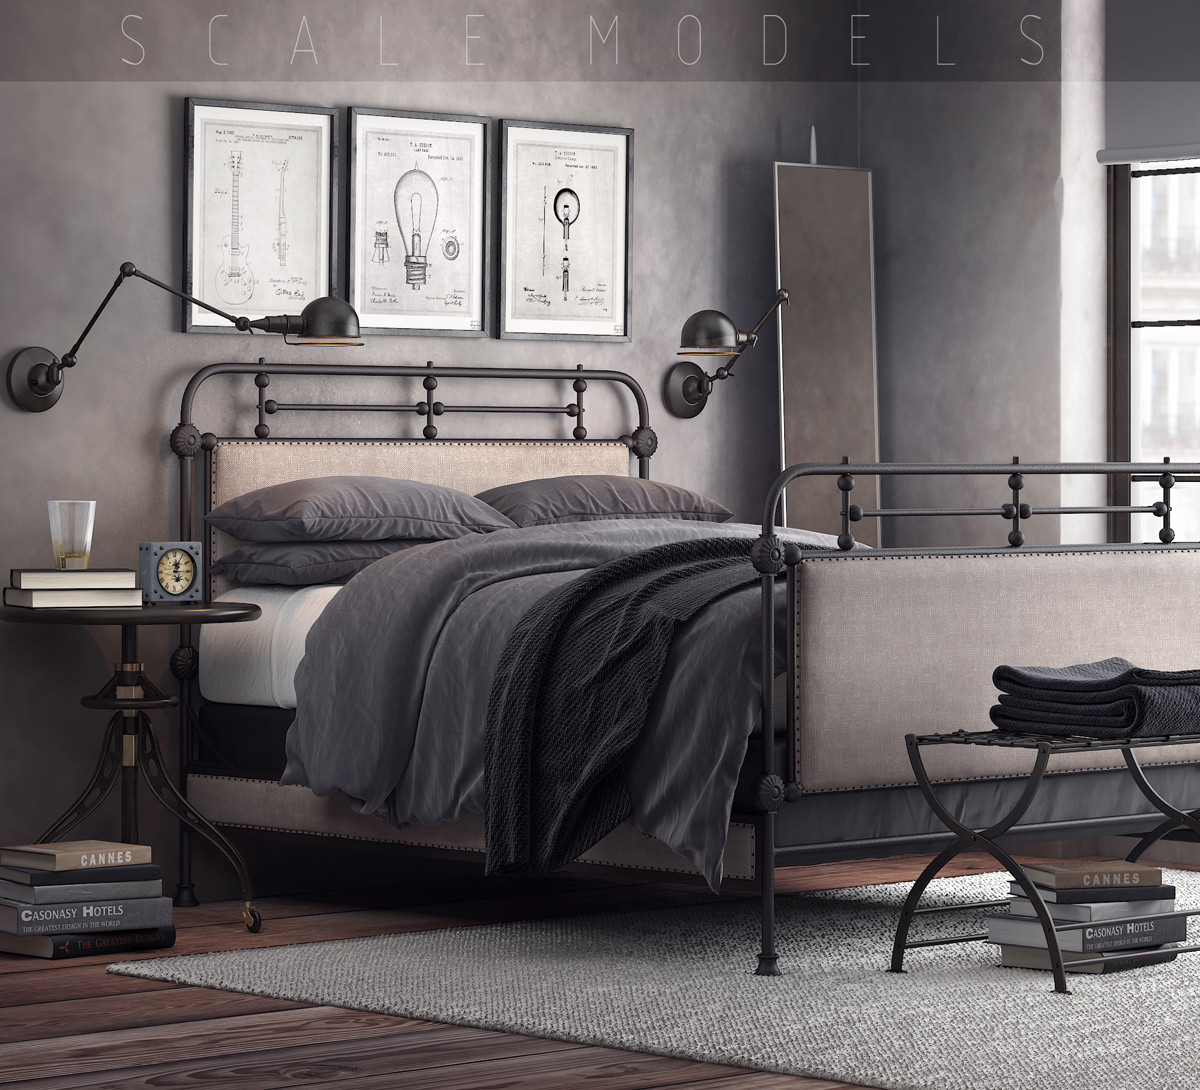 20th-century french bedroom 3d model